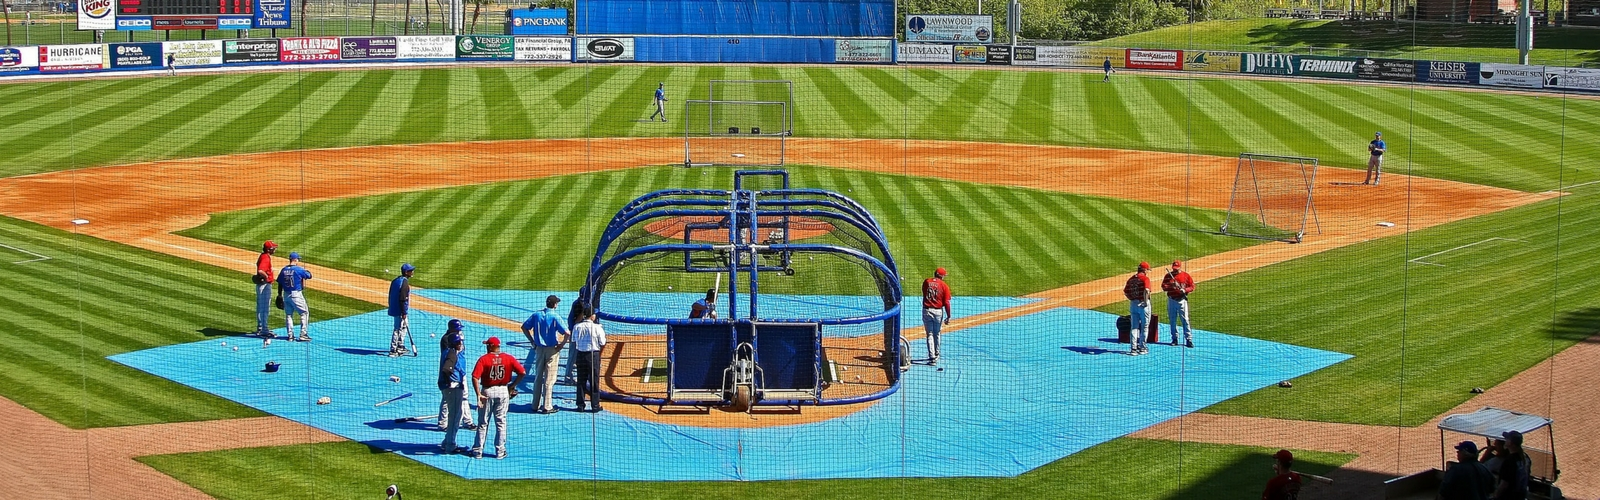 Play Ball! Spring Training has begun for the New York Mets and they are closer than you think.